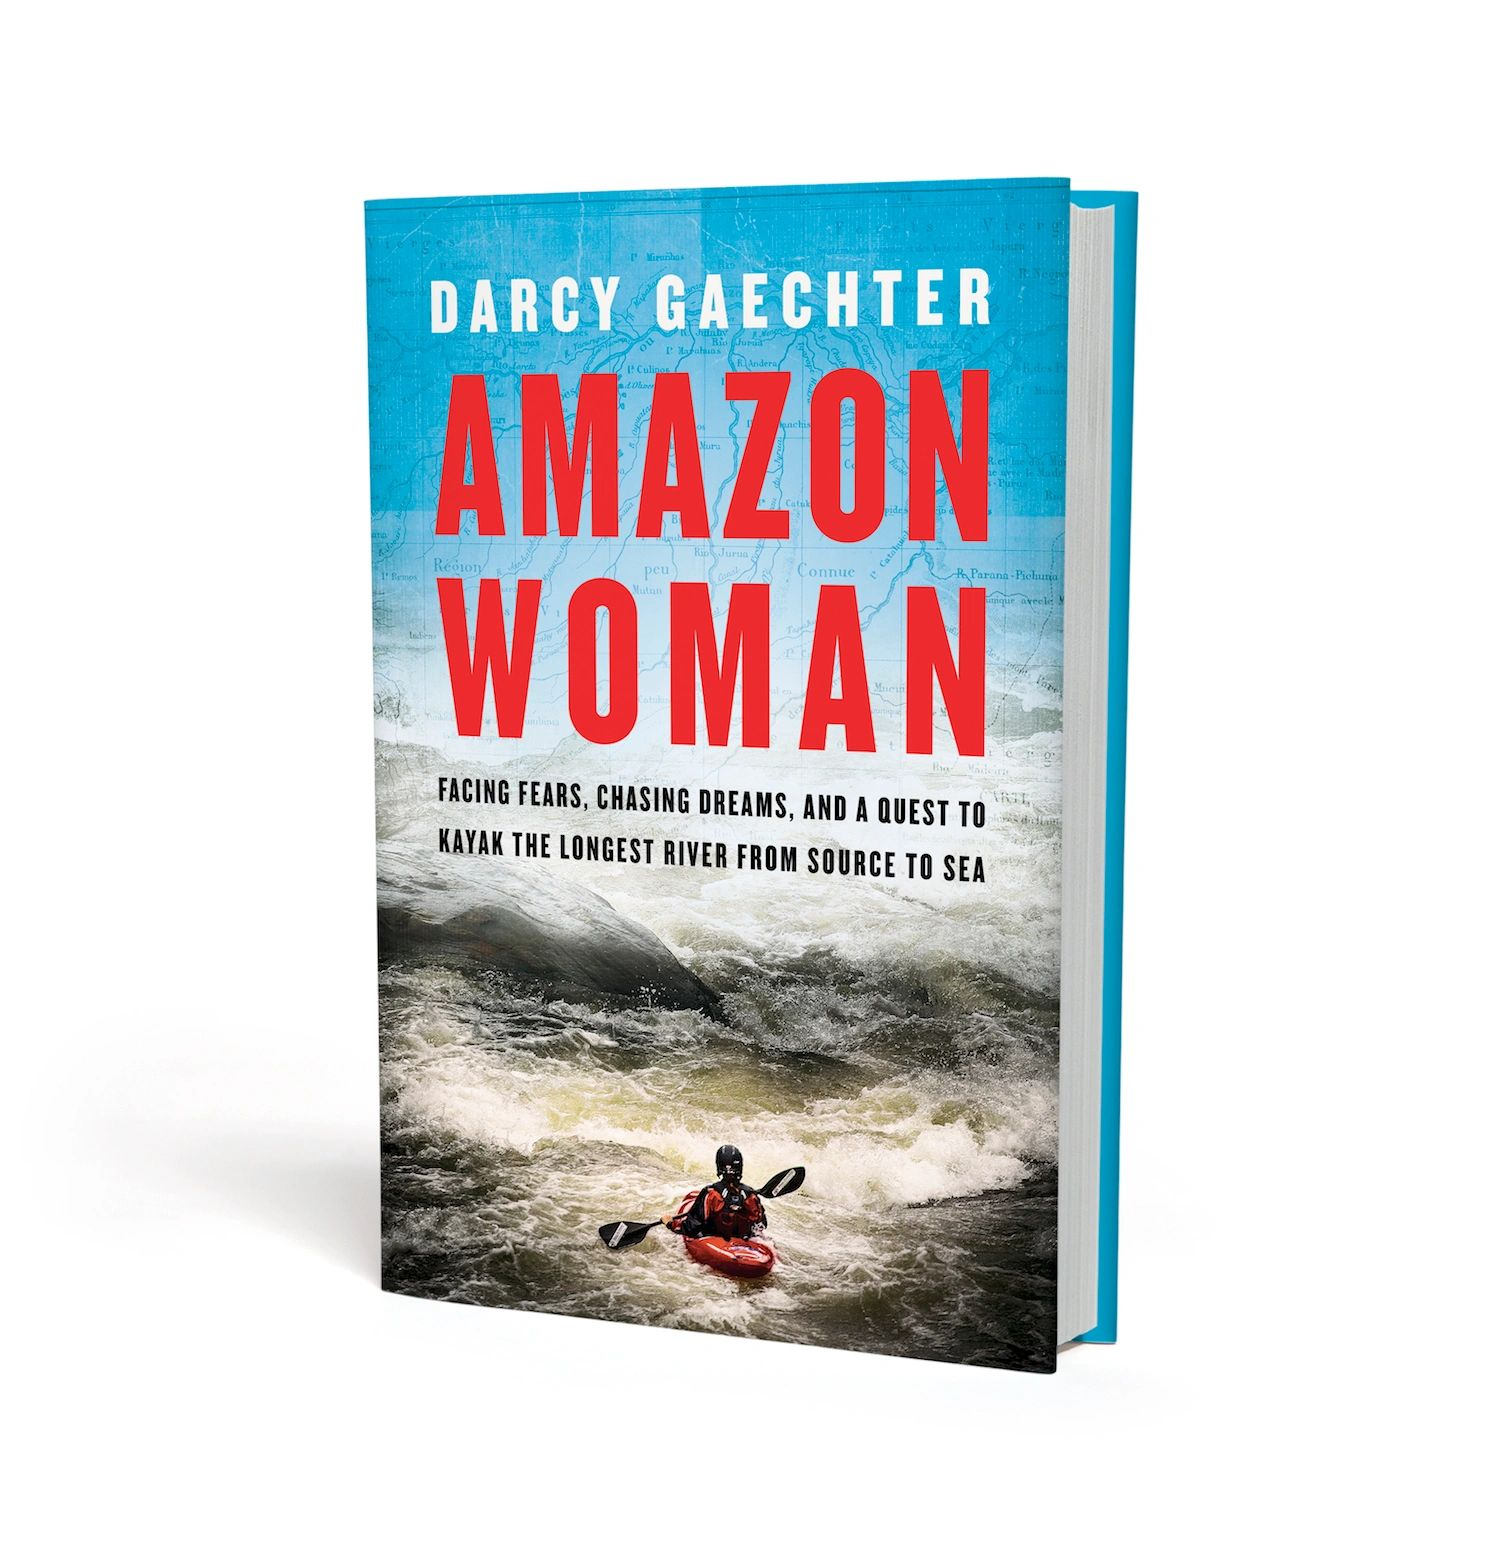 book cover for Amazon Woman - the first on our list of books recommended by an outdoor industry PR agency